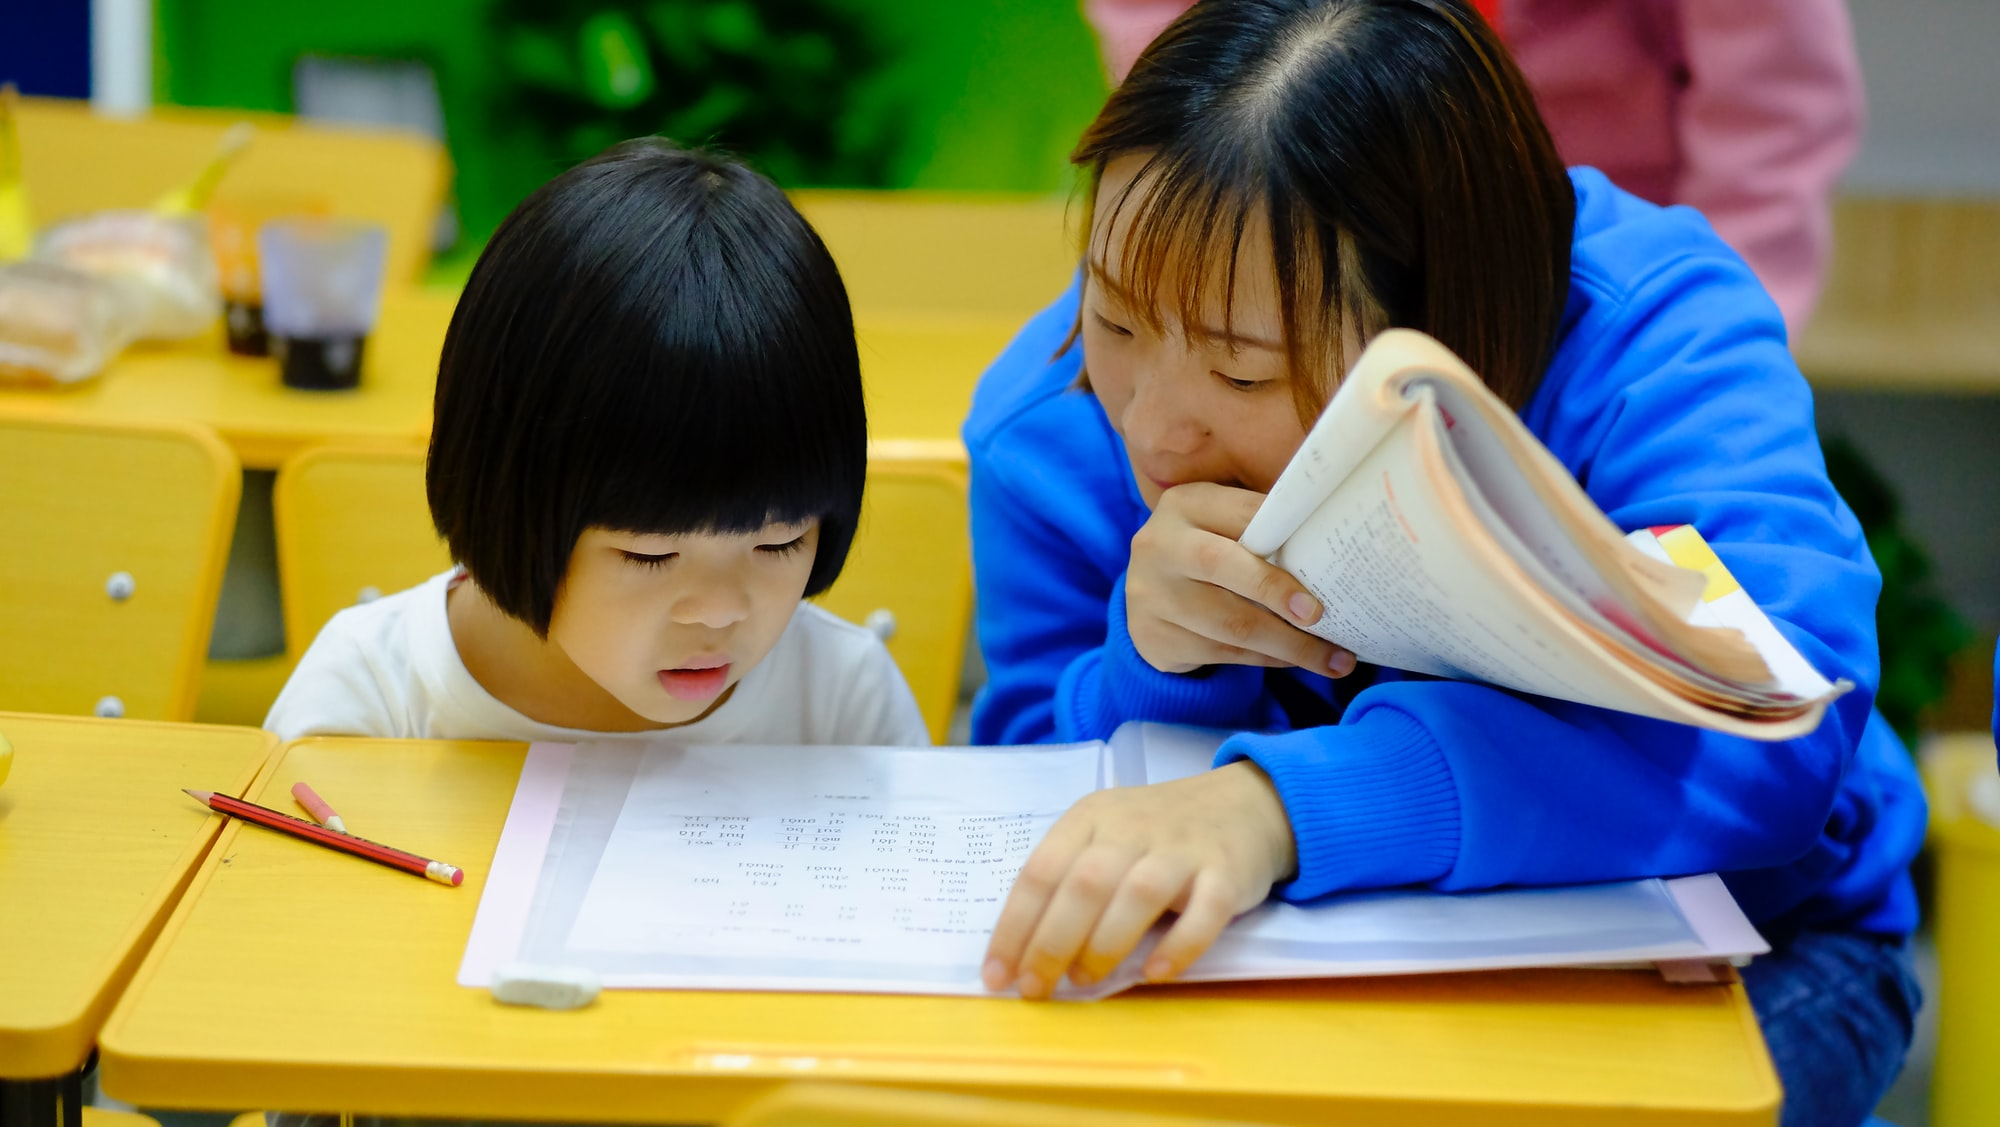 Teachers! Try to understand your pupils' learning styles to improve classroom learning!